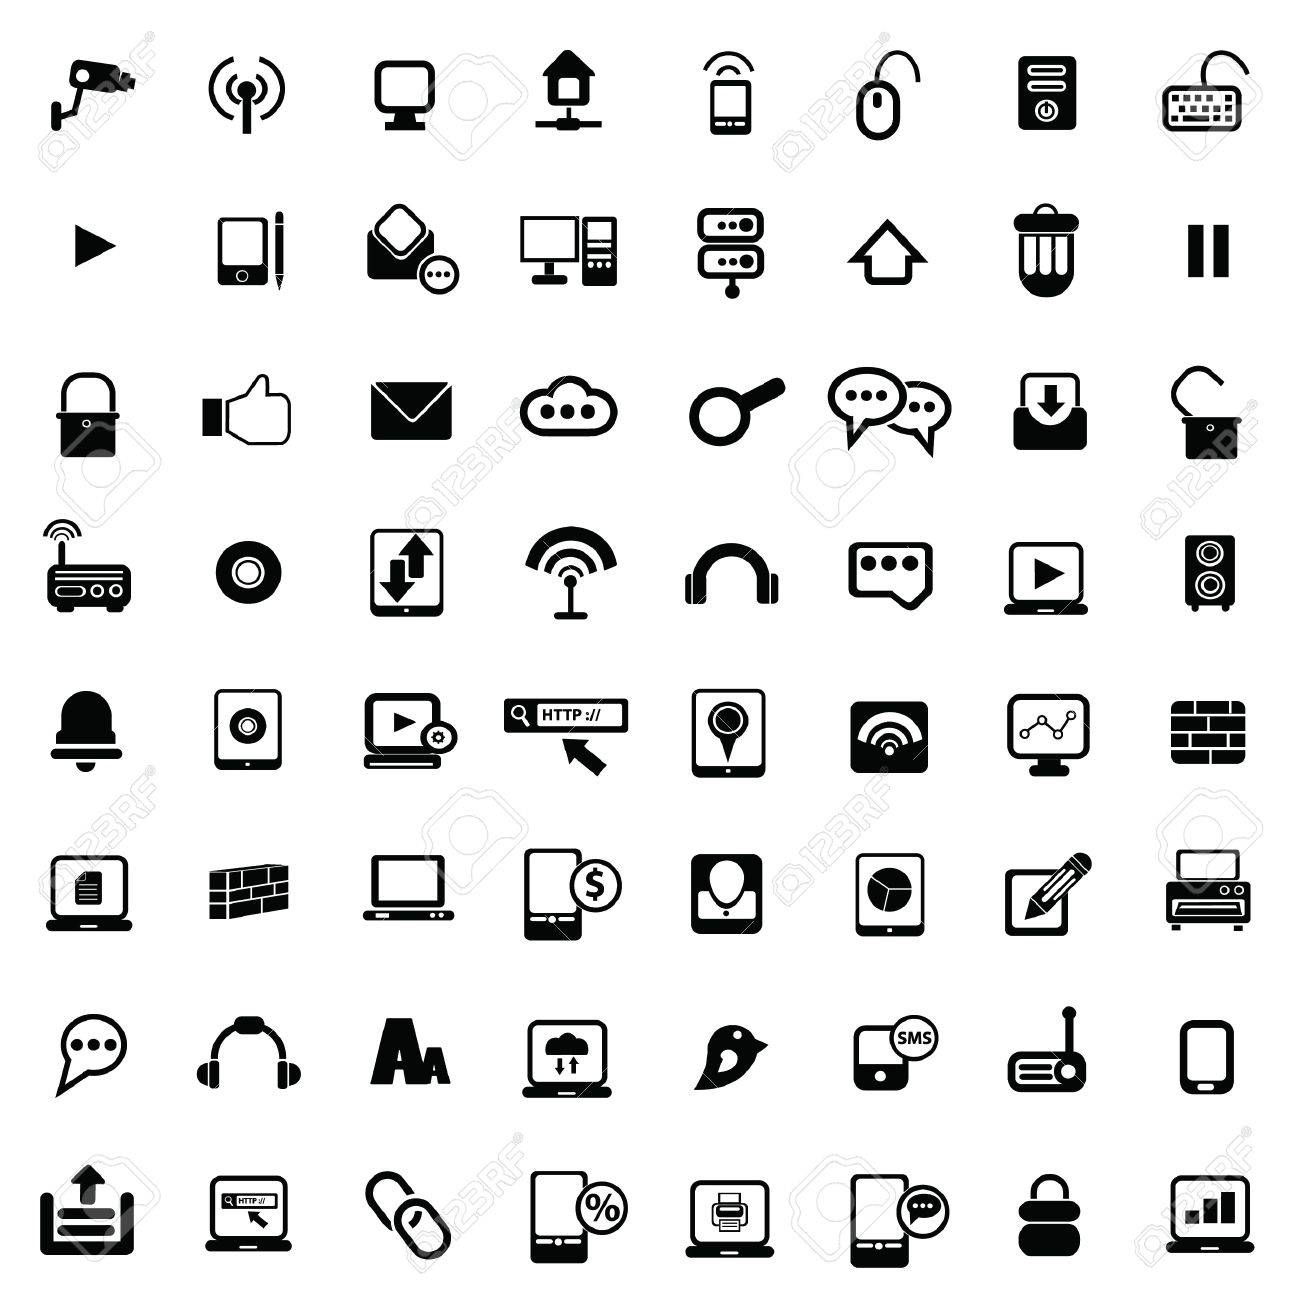 Web Universal icons For Web and communication Stock Vector - 19207928